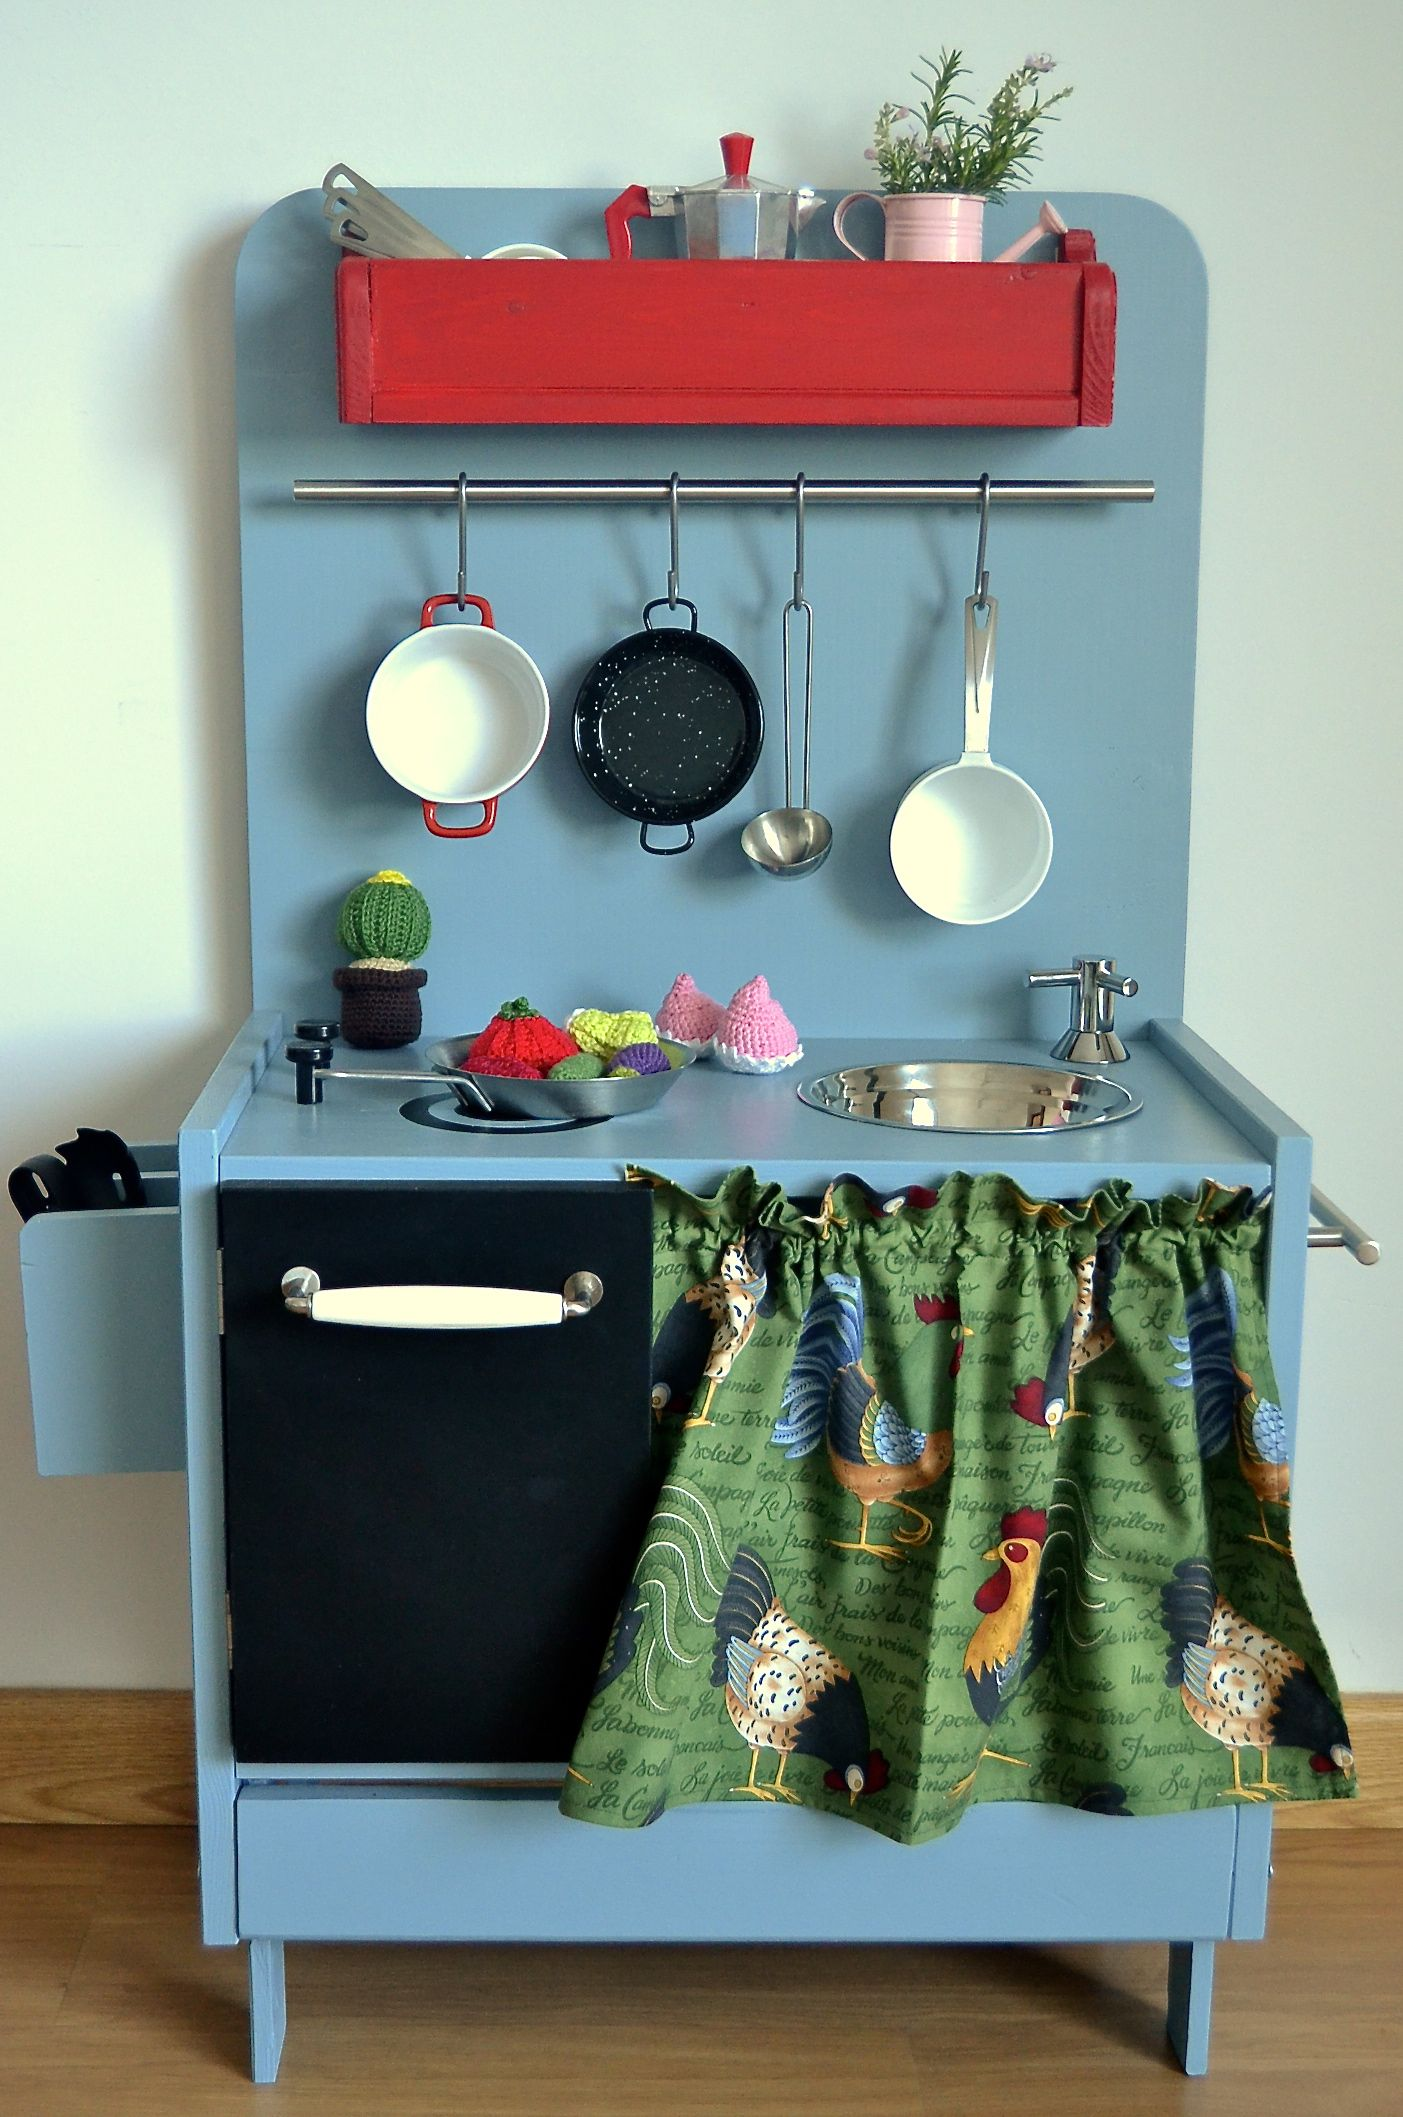 Wooden play kitchen - made from a spanish company, I think, so cute ...